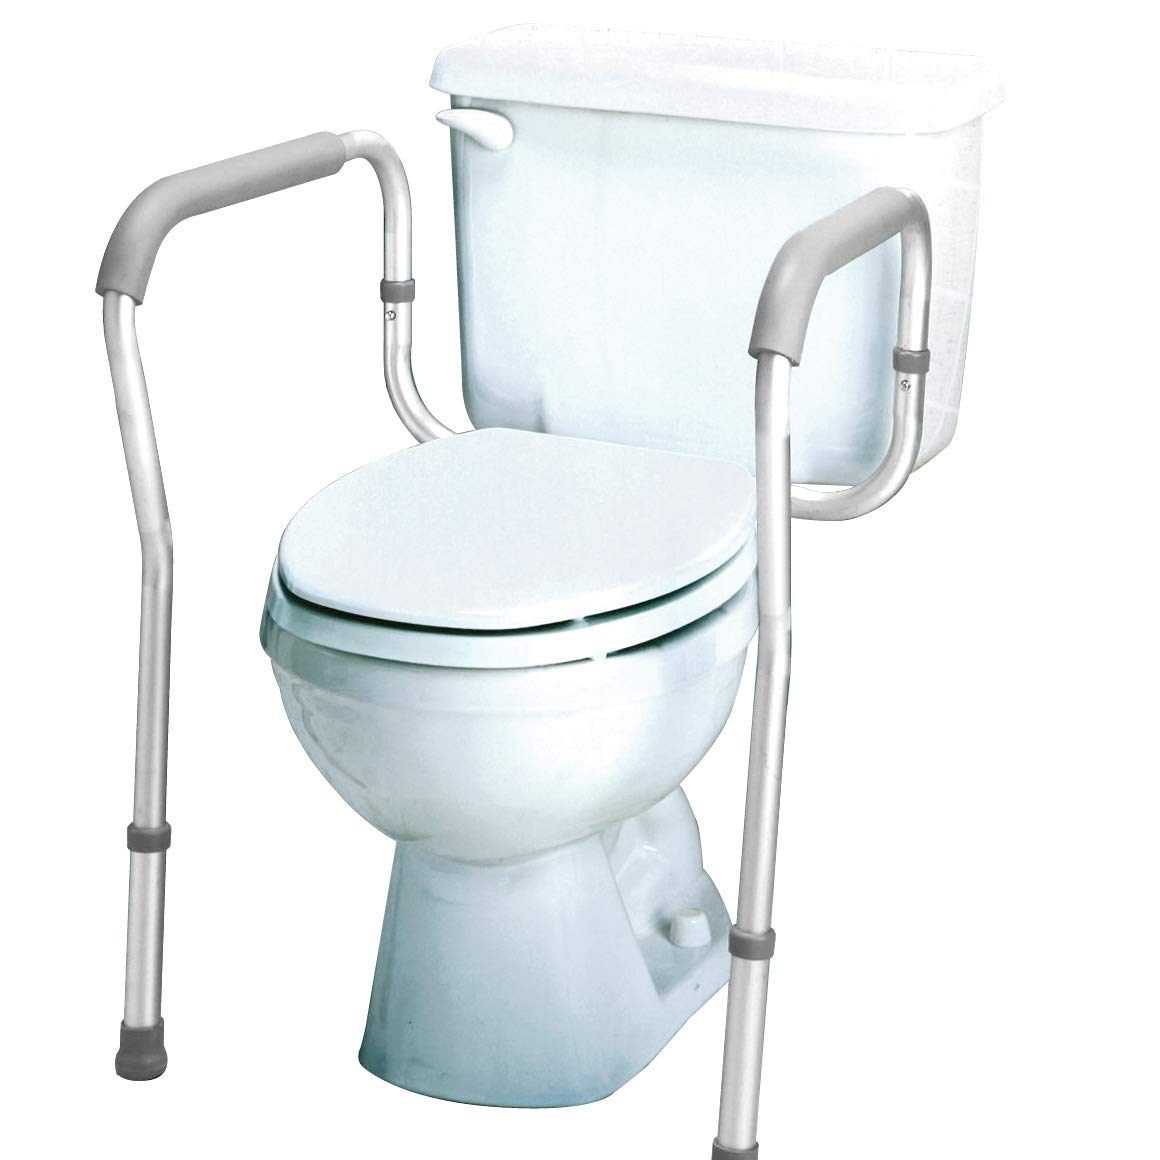 Fine Carex Toilet Safety Frame Toilet Safety Rails And Grab Bars For Seniors Elderly Disable Handicap Easy Install With Adjustable Width Height Ibusinesslaw Wood Chair Design Ideas Ibusinesslaworg